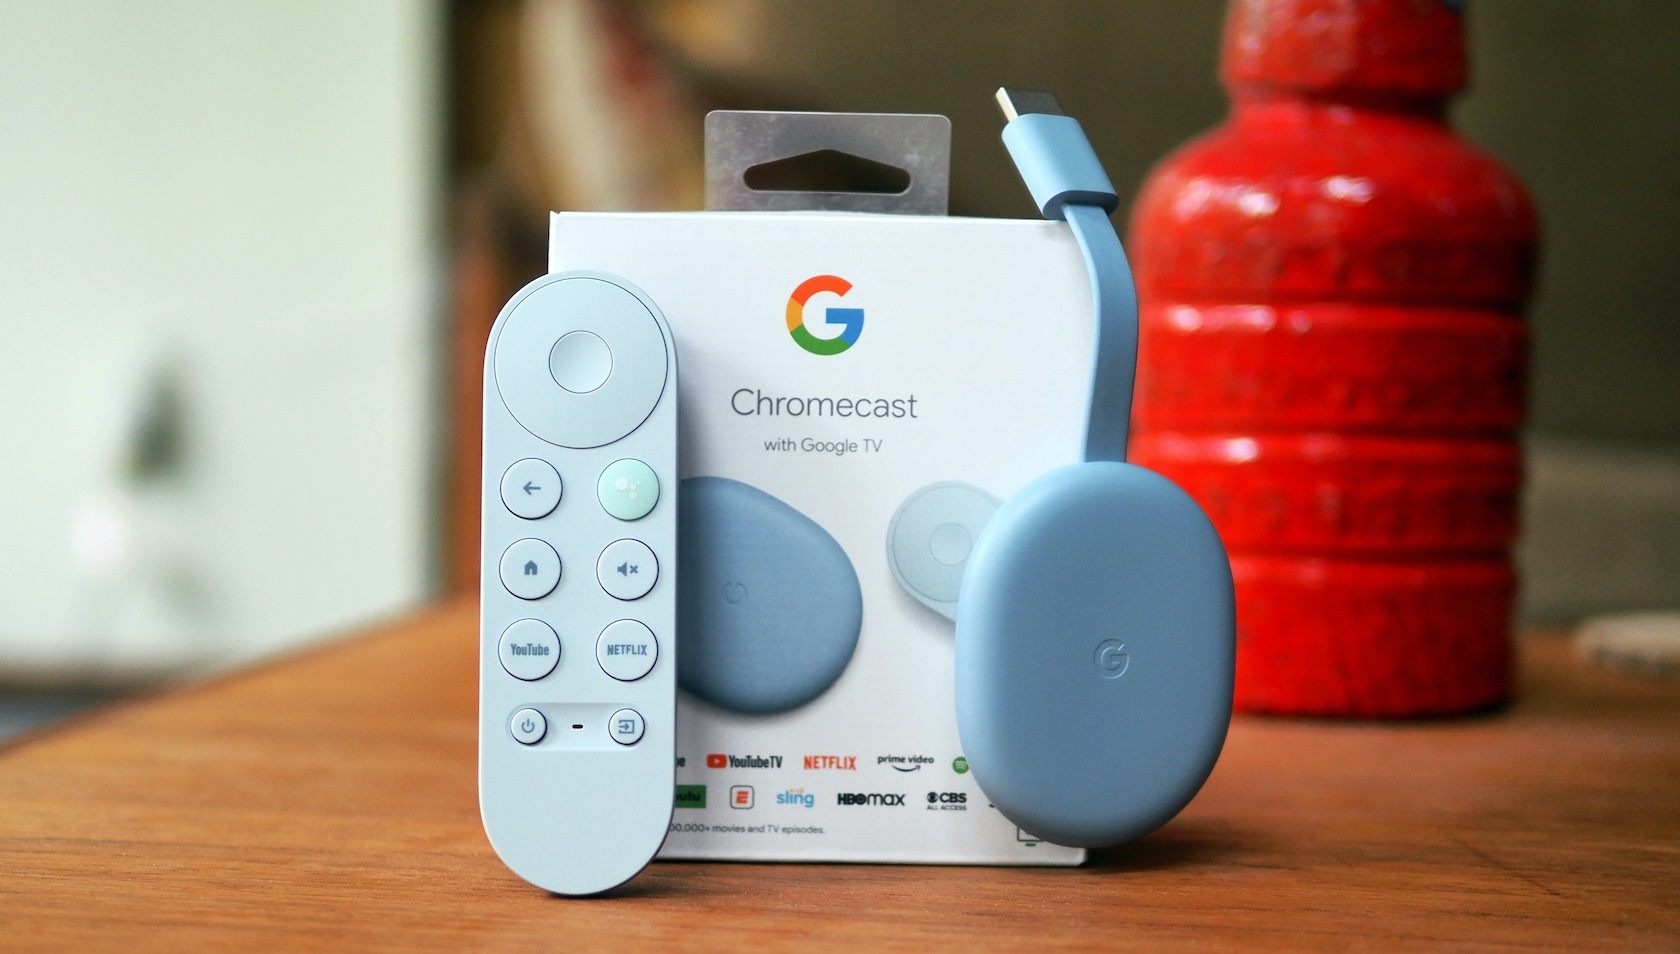 Chromecast With Android TV And Remote Control - Learn How It Works